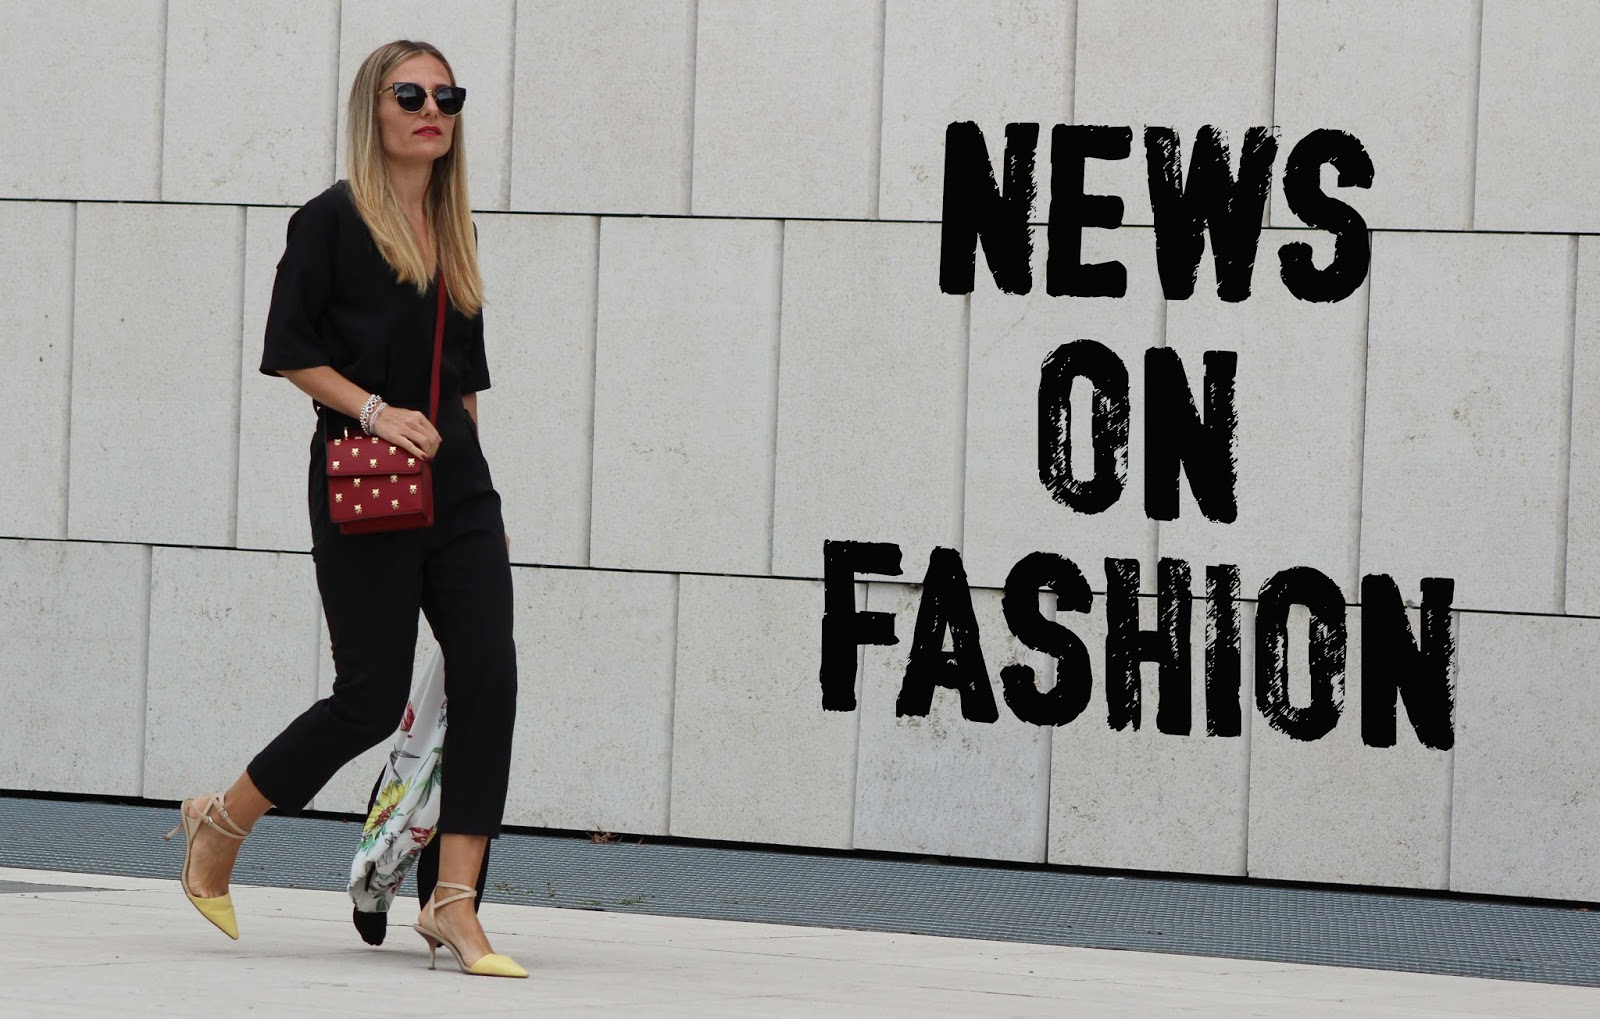 Eniwhere Fashion - News on Fashion